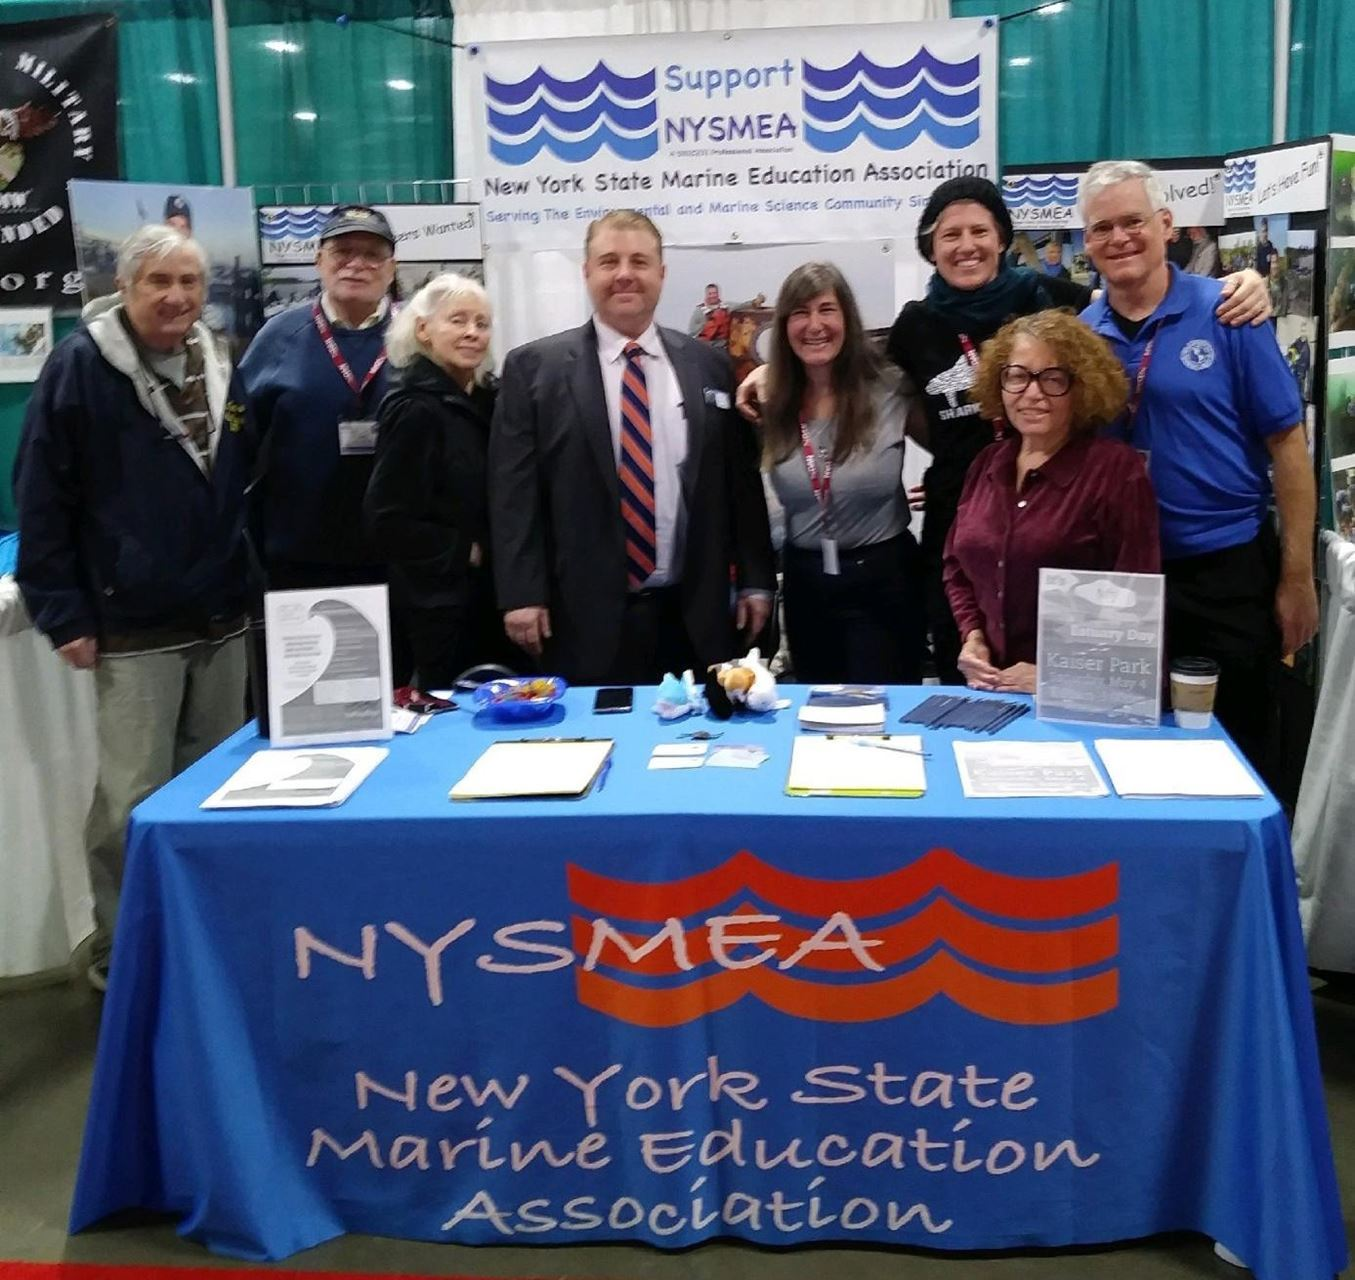 New York State Marine Education Association - Welcome